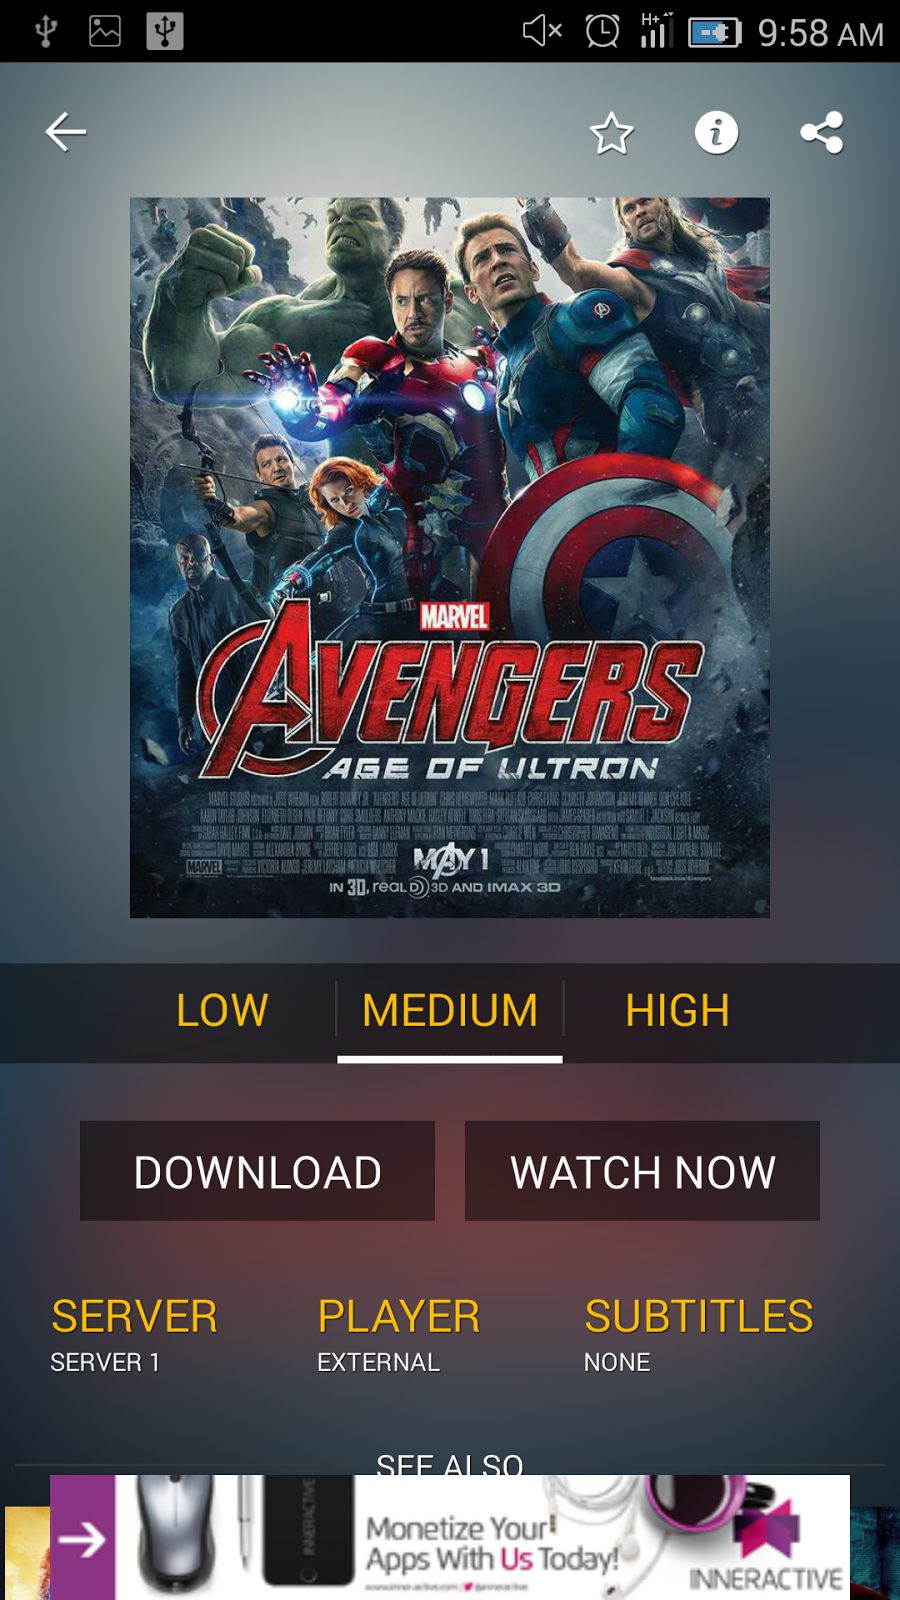 Phone Free Movie Sites For Android Phones stream download movies tvshows on android phonesshowbox show box has another important feature which allows user to watch and free without signing up or paying a single penny